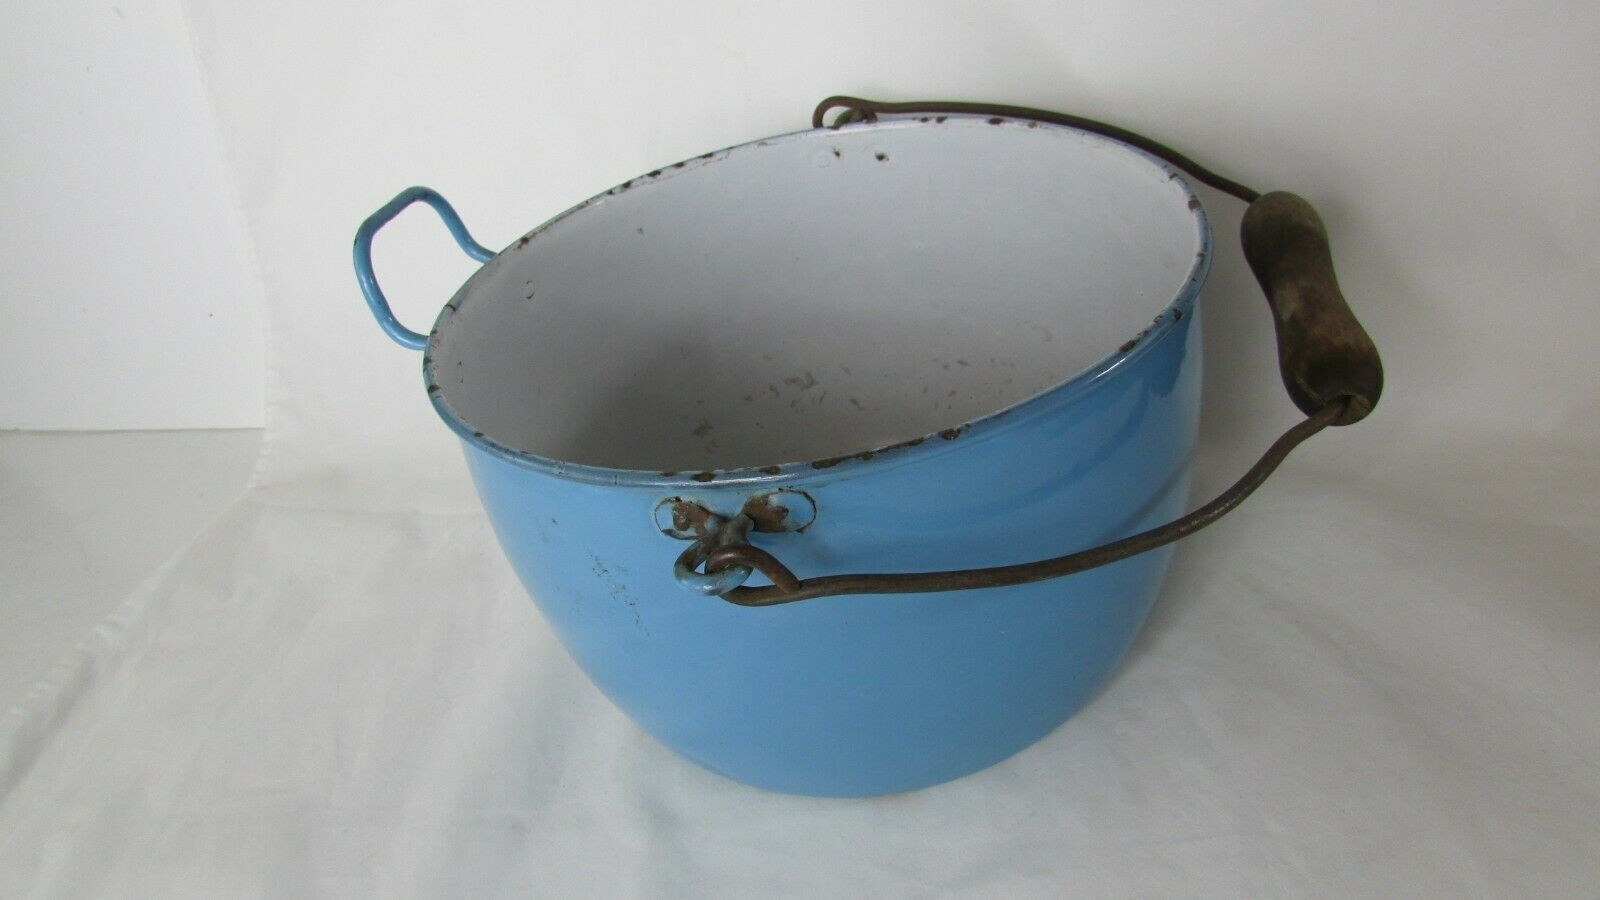 Vintage Enamel  Pail Bucket Blue and White Enamelware With Wooden Handle image 3